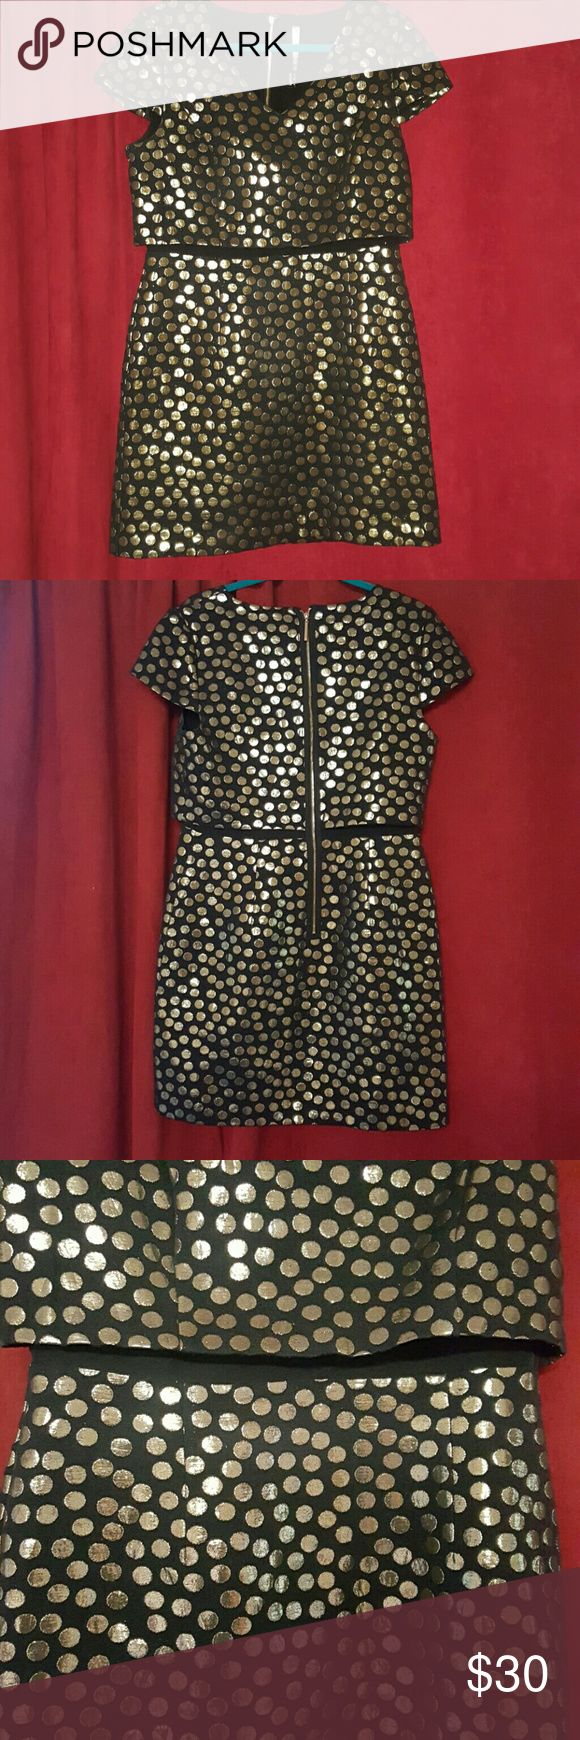 Black and Metallic Gold Polka Dot Kensie Dress This chic, modern dress is perfect for a night out or any semi formal event. The top and bottom are connected by a black fabric, which gives the illusion of a two piece look, with all the comfort of a one piece dress. Kensie Dresses Mini